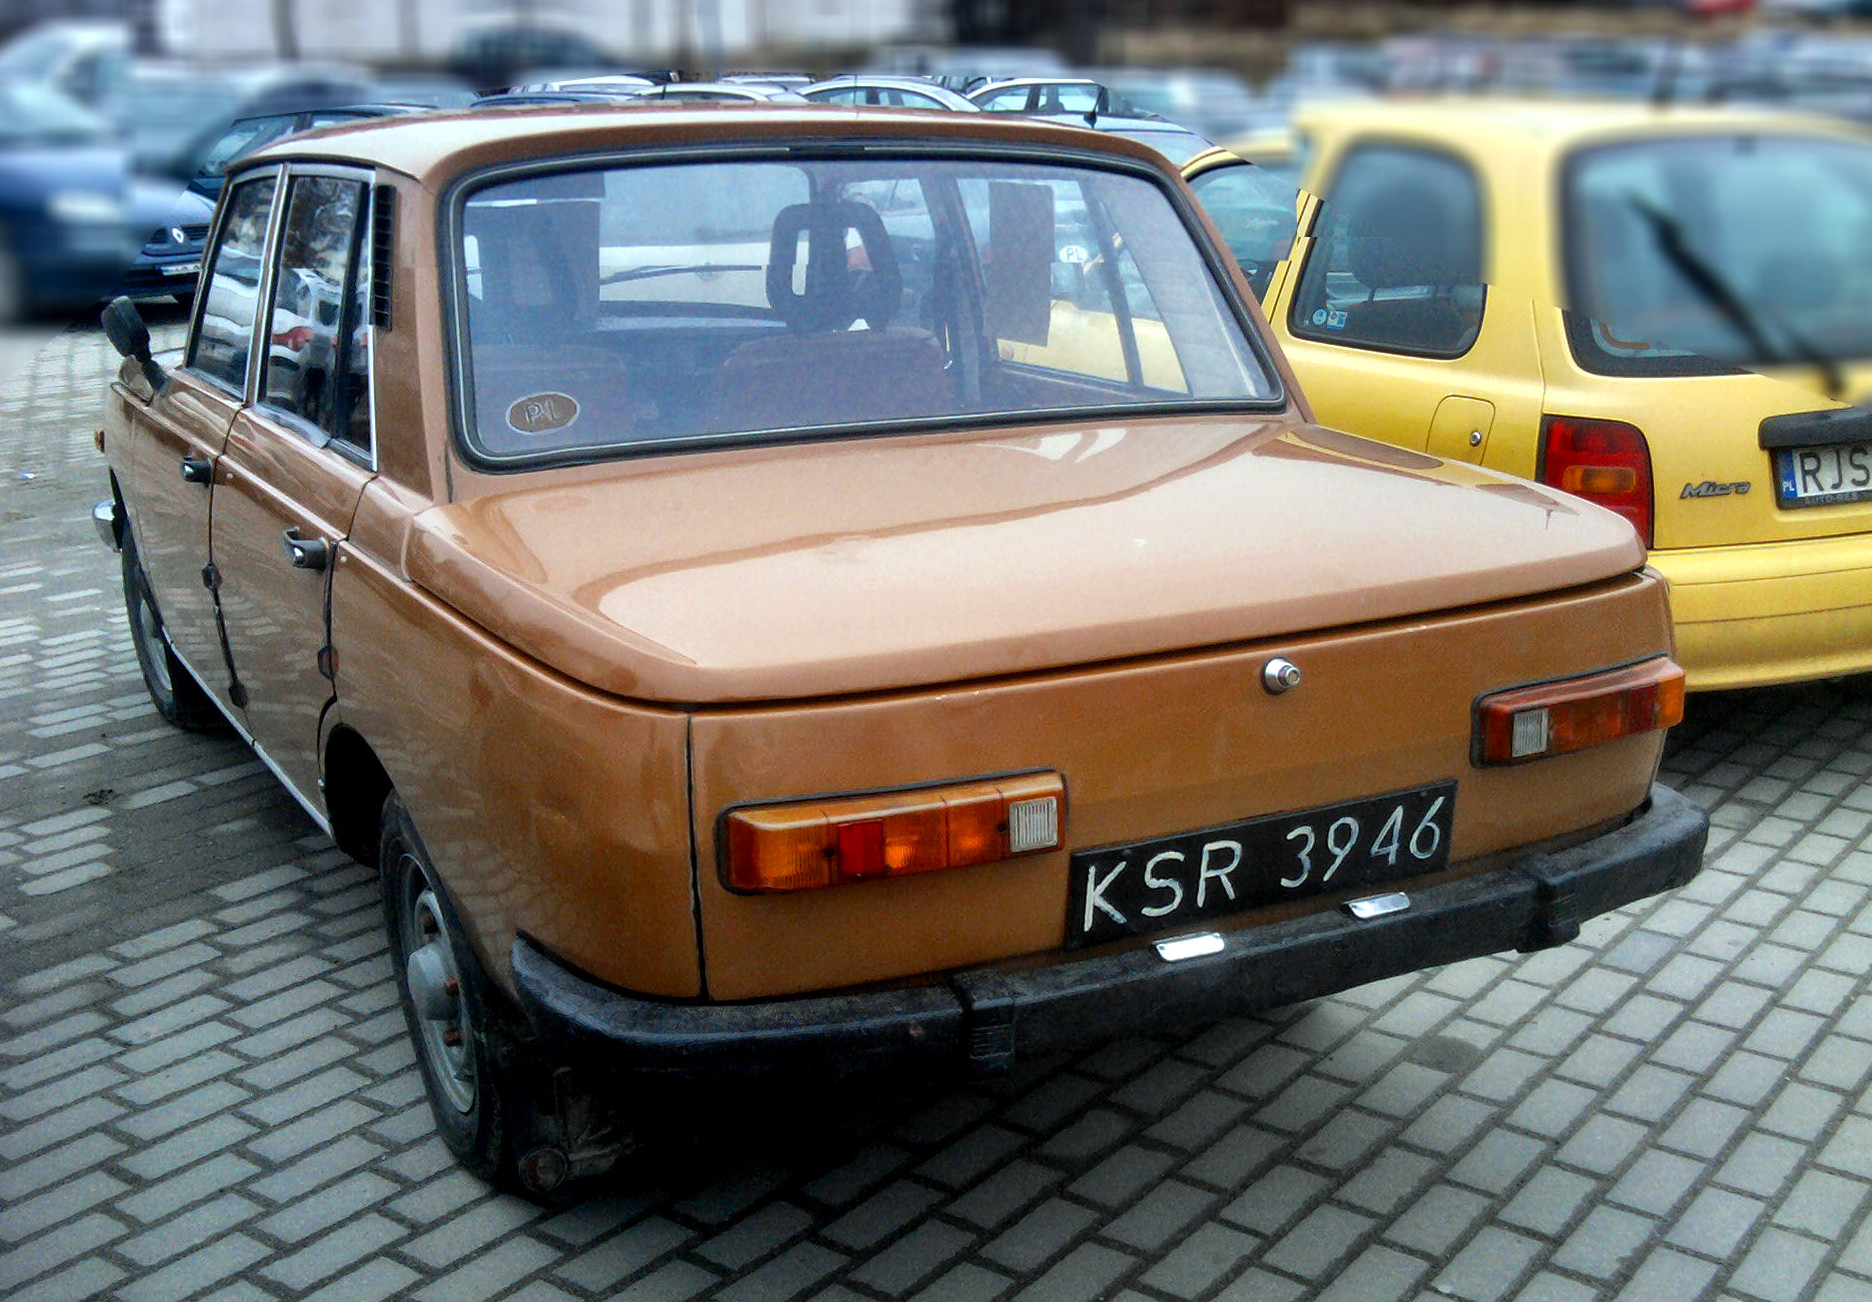 File:Brown Wartburg 353 (1983) seen in Jasło, Poland.jpg